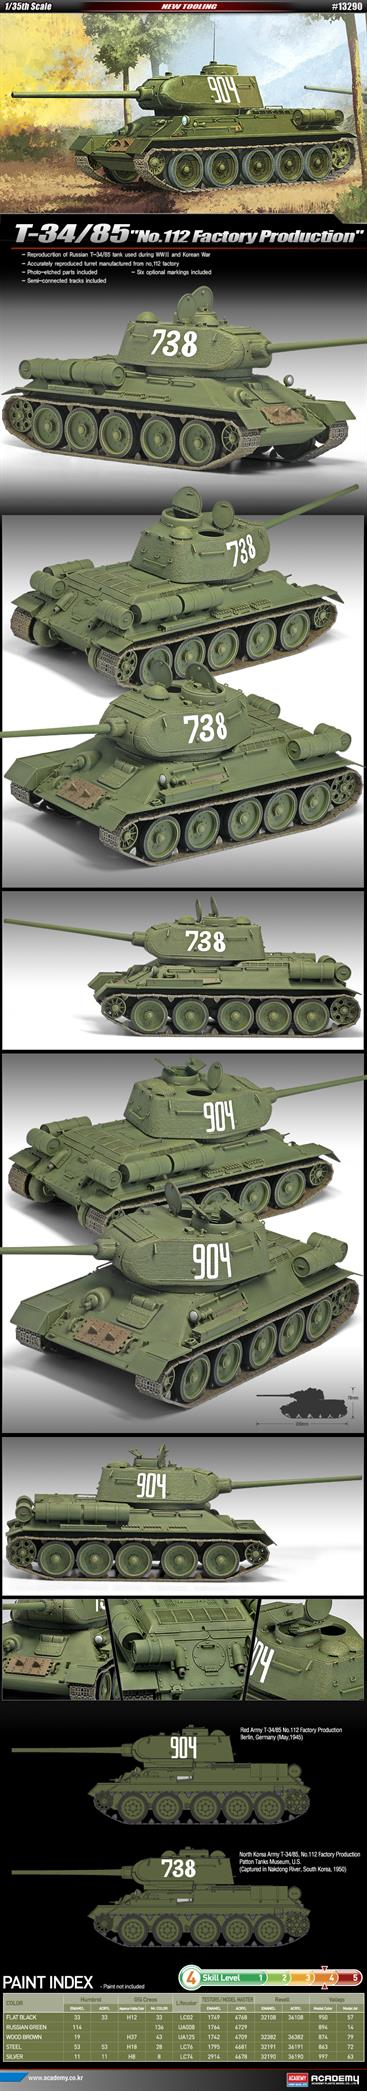 Academy 1/35 Russian T-34/85 no.112 Factory Production Tank Kit 13290Glue and paints are required to assemble and complete the model (not included)